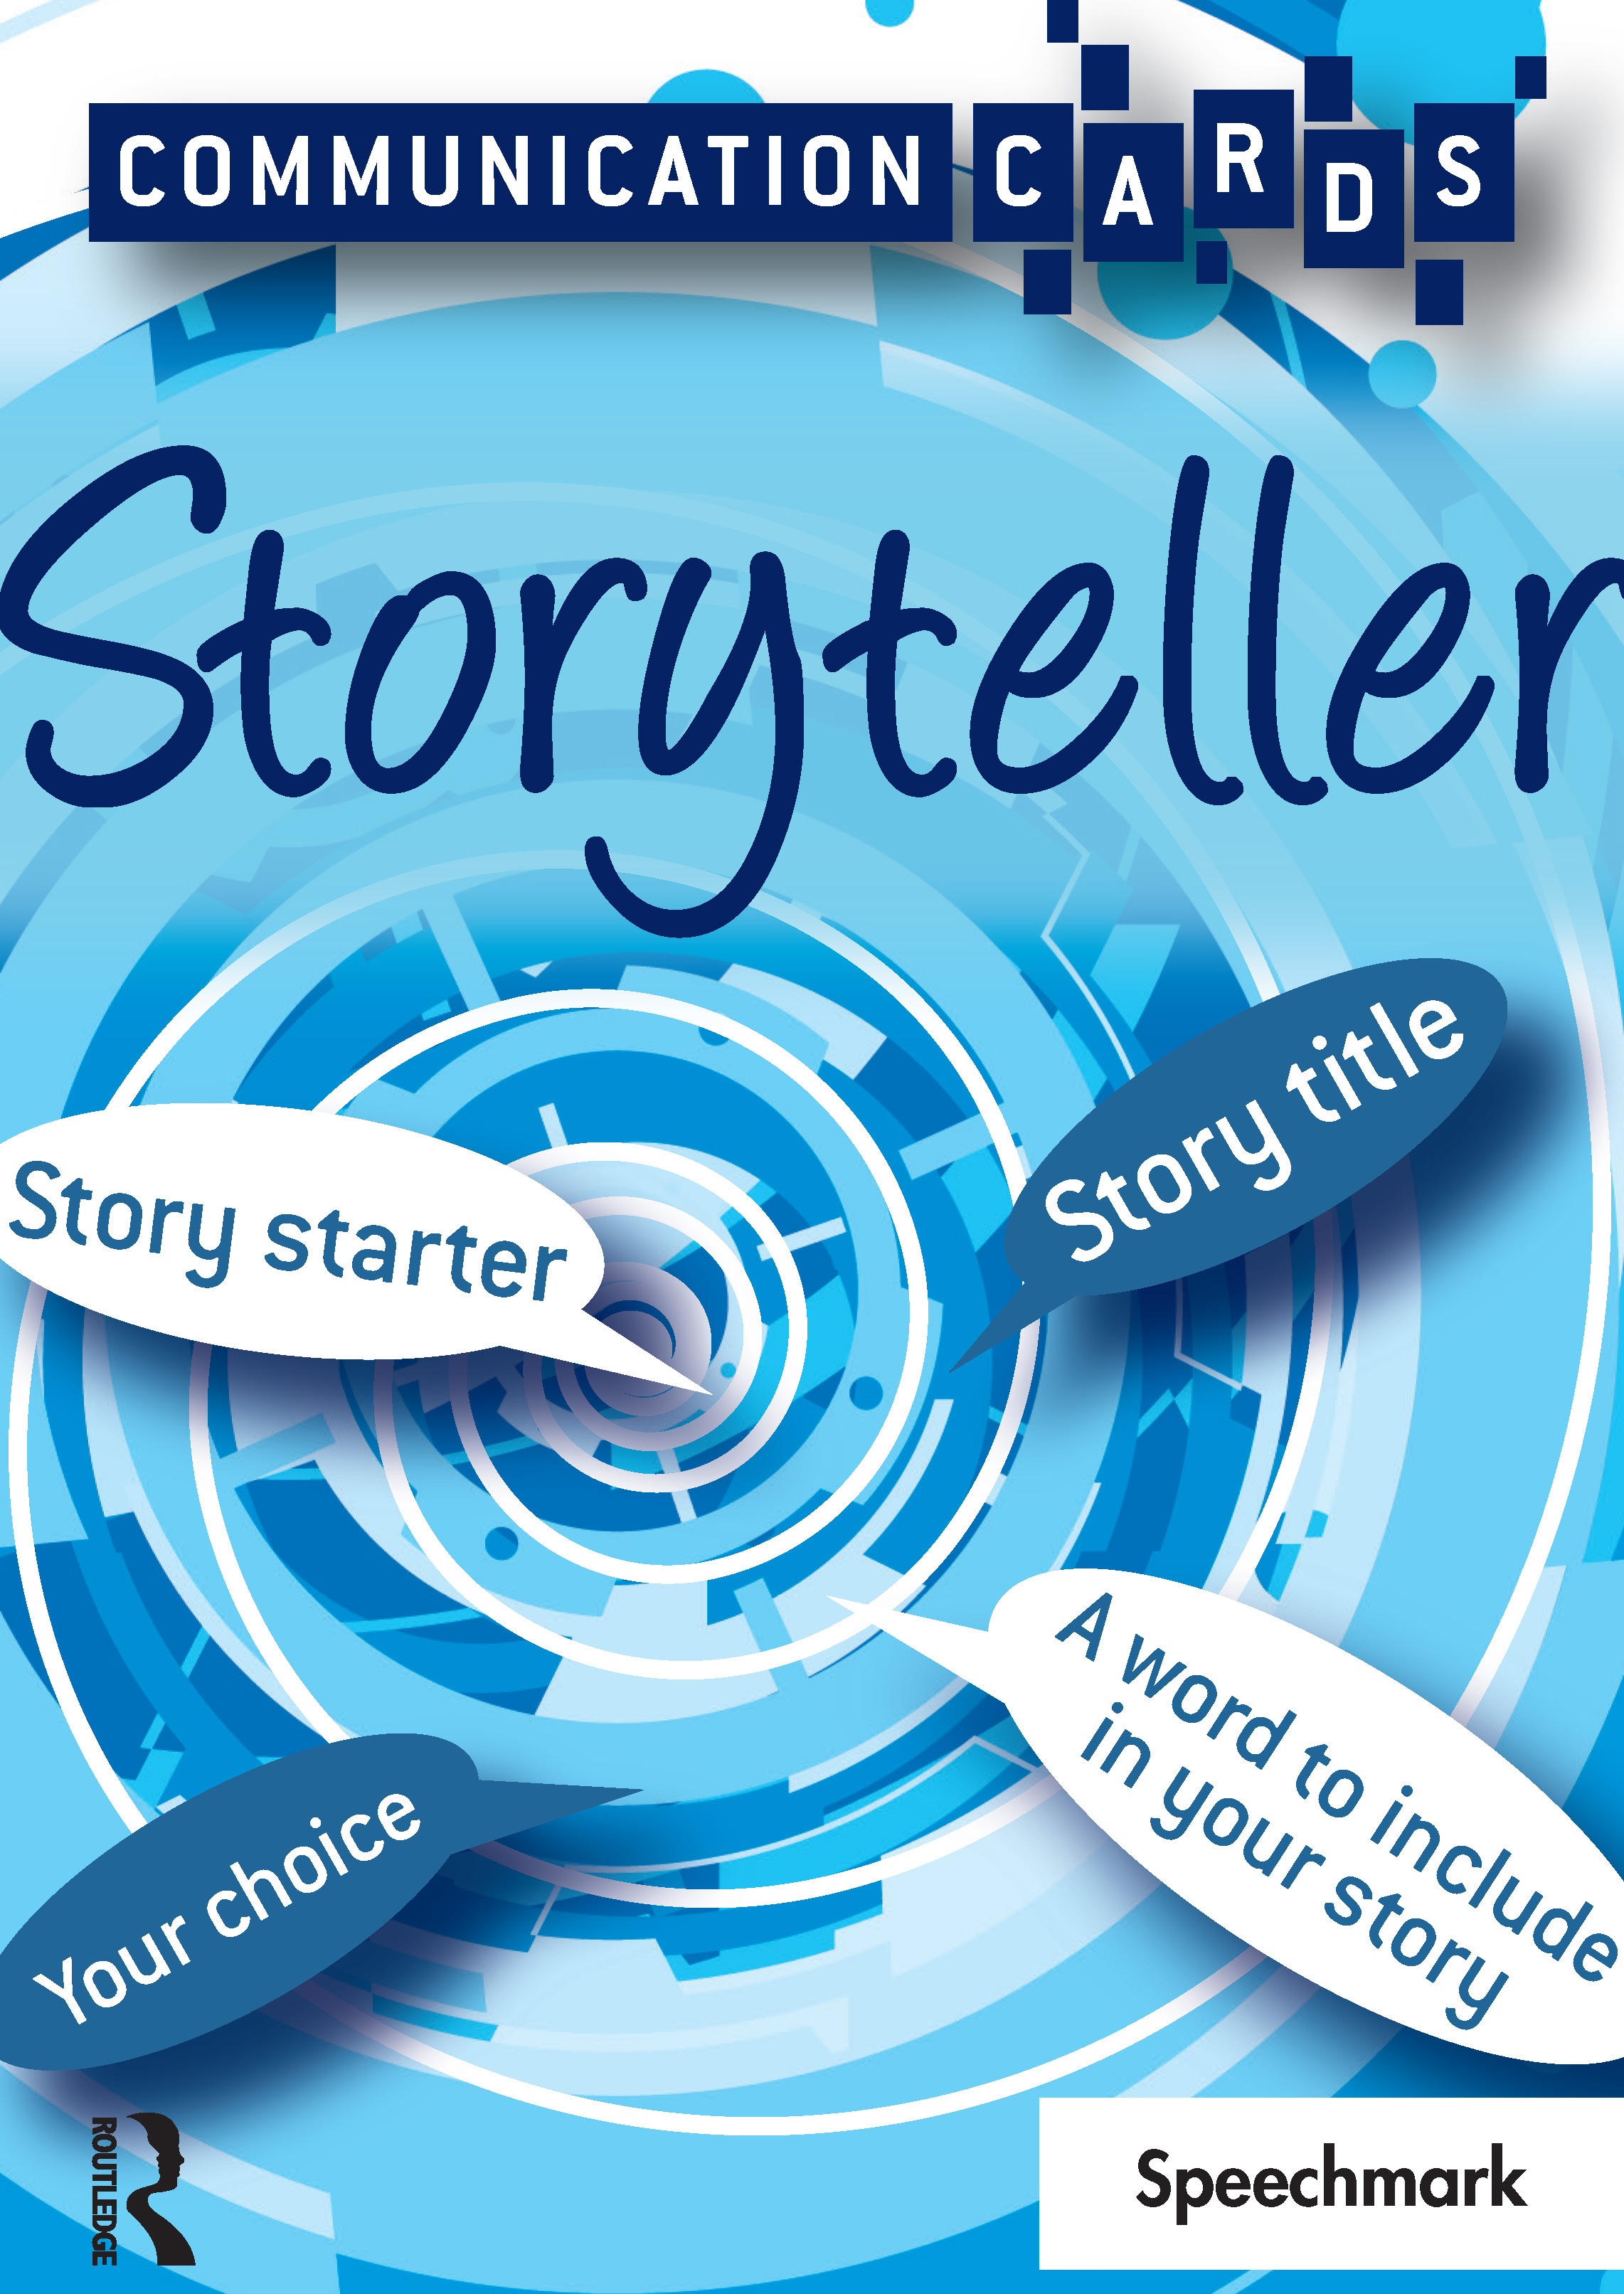 Storyteller - Communication Cards: 1st Edition (Flashcards) book cover